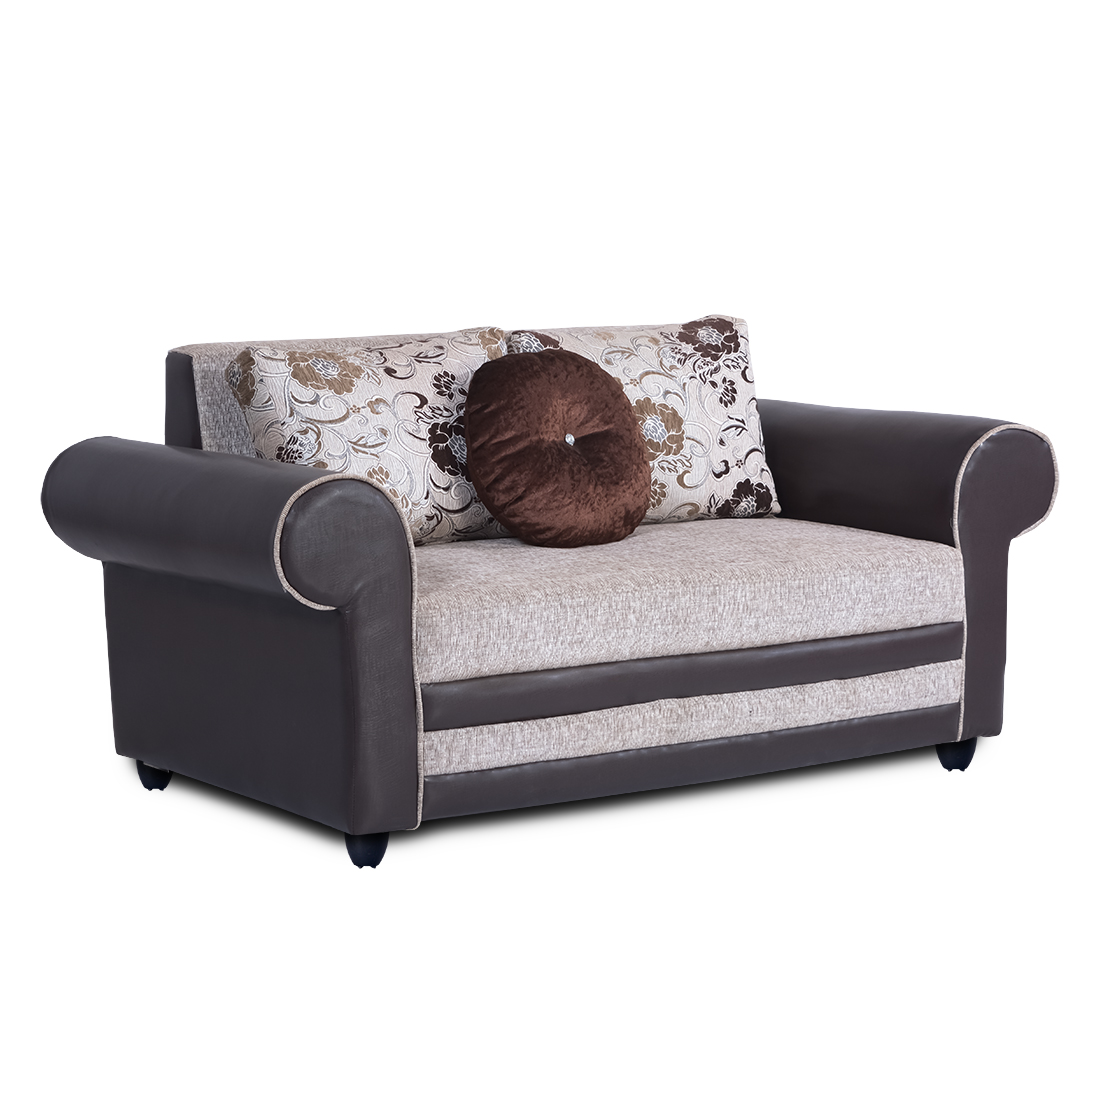 L Shape Sofa Set Snapdeal 2 Seater Sofa Set Online Review Home Co